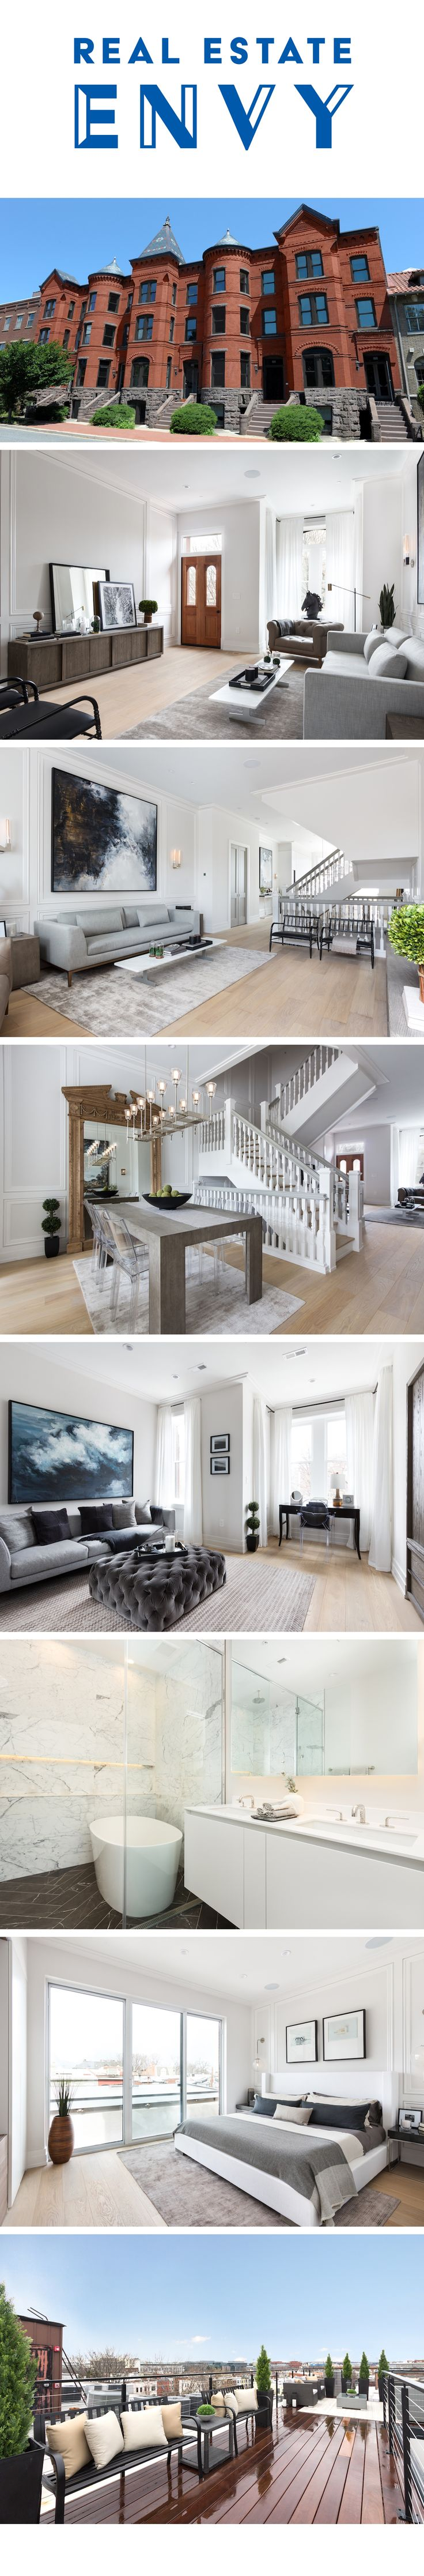 189 best Luxury Homes images on Pinterest   Luxurious homes, Luxury ...